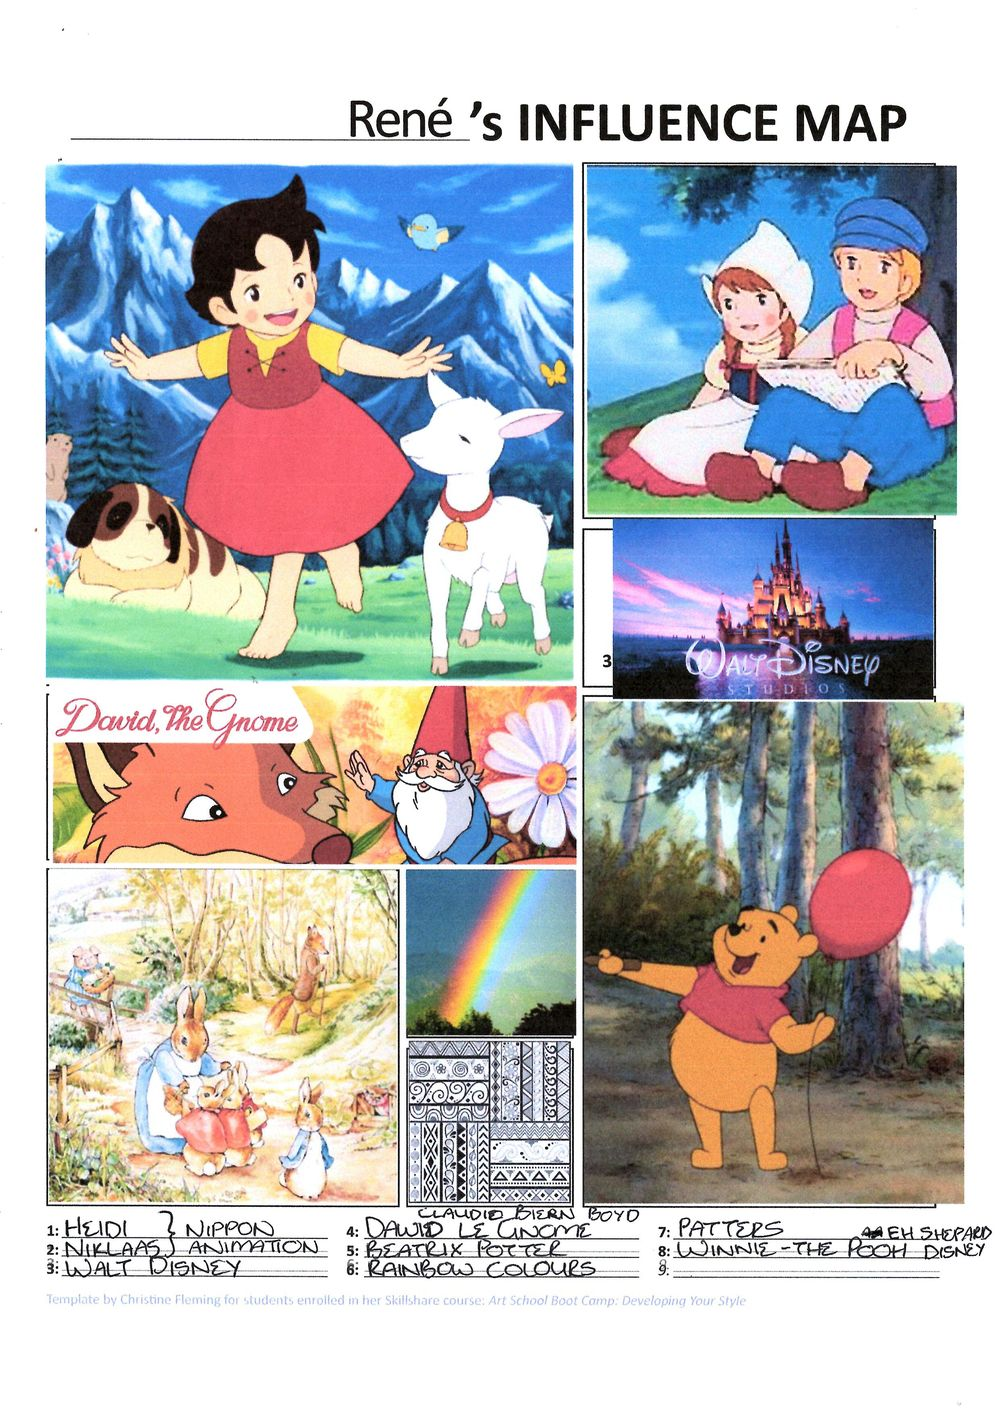 Childhood Influence Map - image 1 - student project